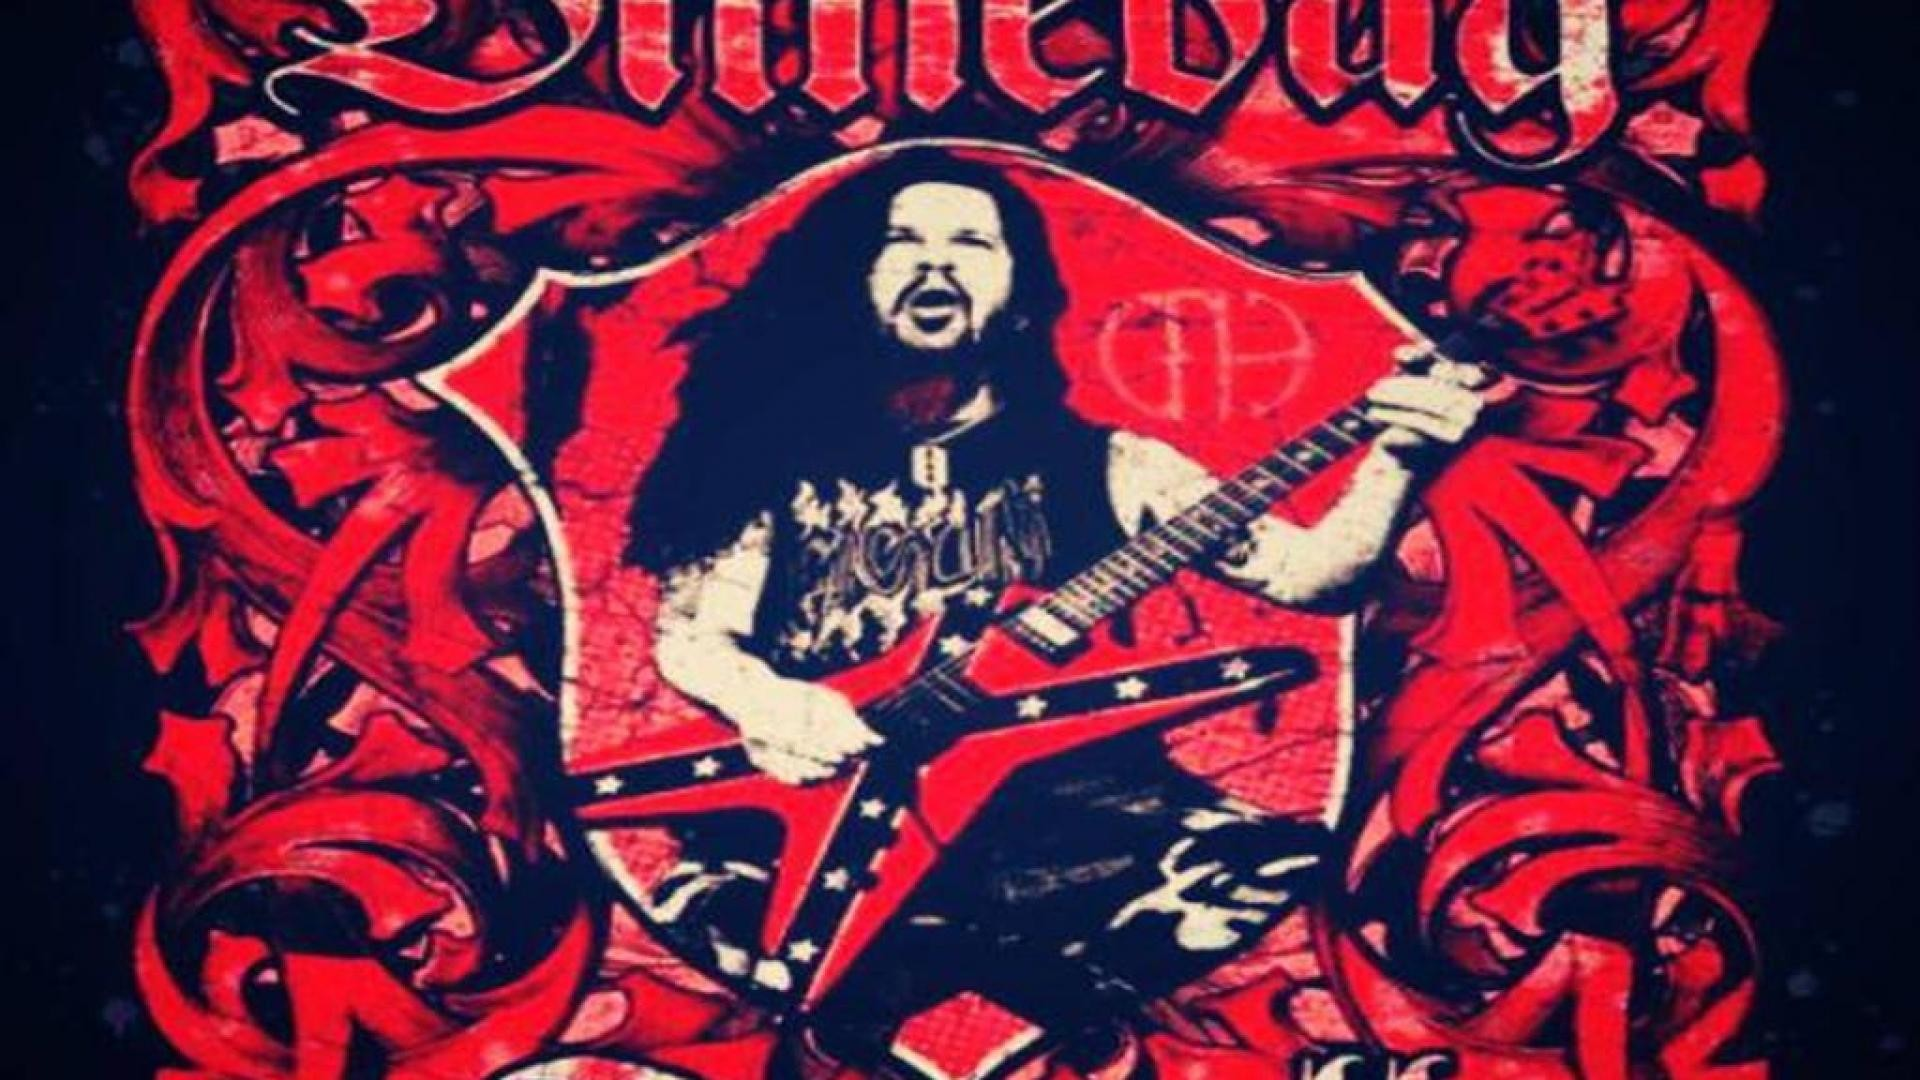 1920x1080 Dimebag darrell - (#114809) - High Quality and Resolution .